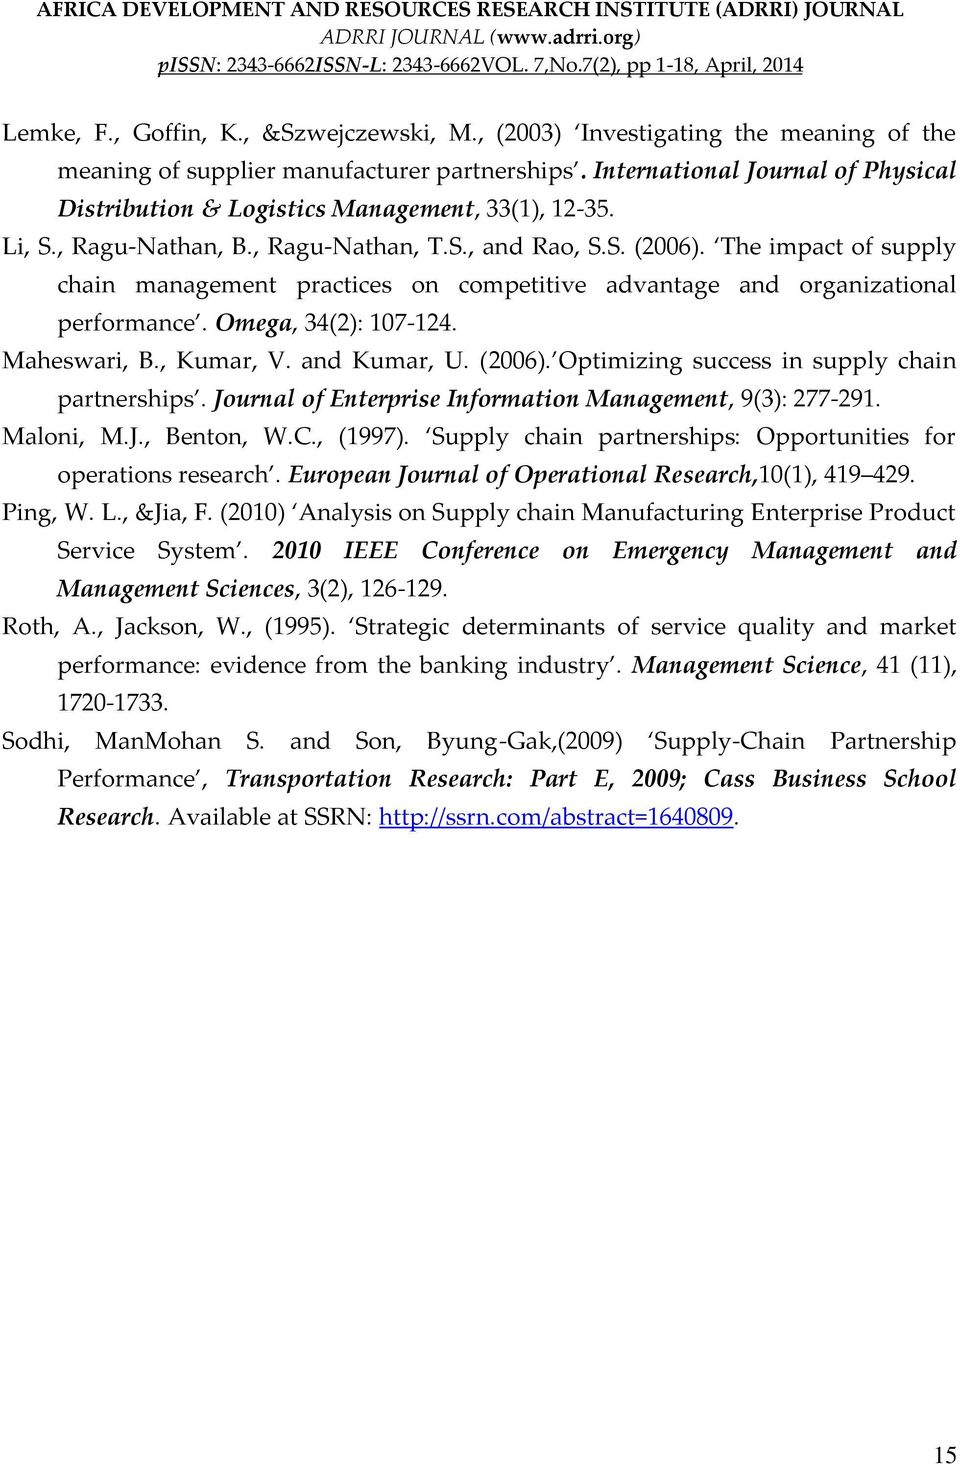 The impact of supply chain management practices on competitive advantage and organizational performance. Omega, 34(2): 107-124. Maheswari, B., Kumar, V. and Kumar, U. (2006).